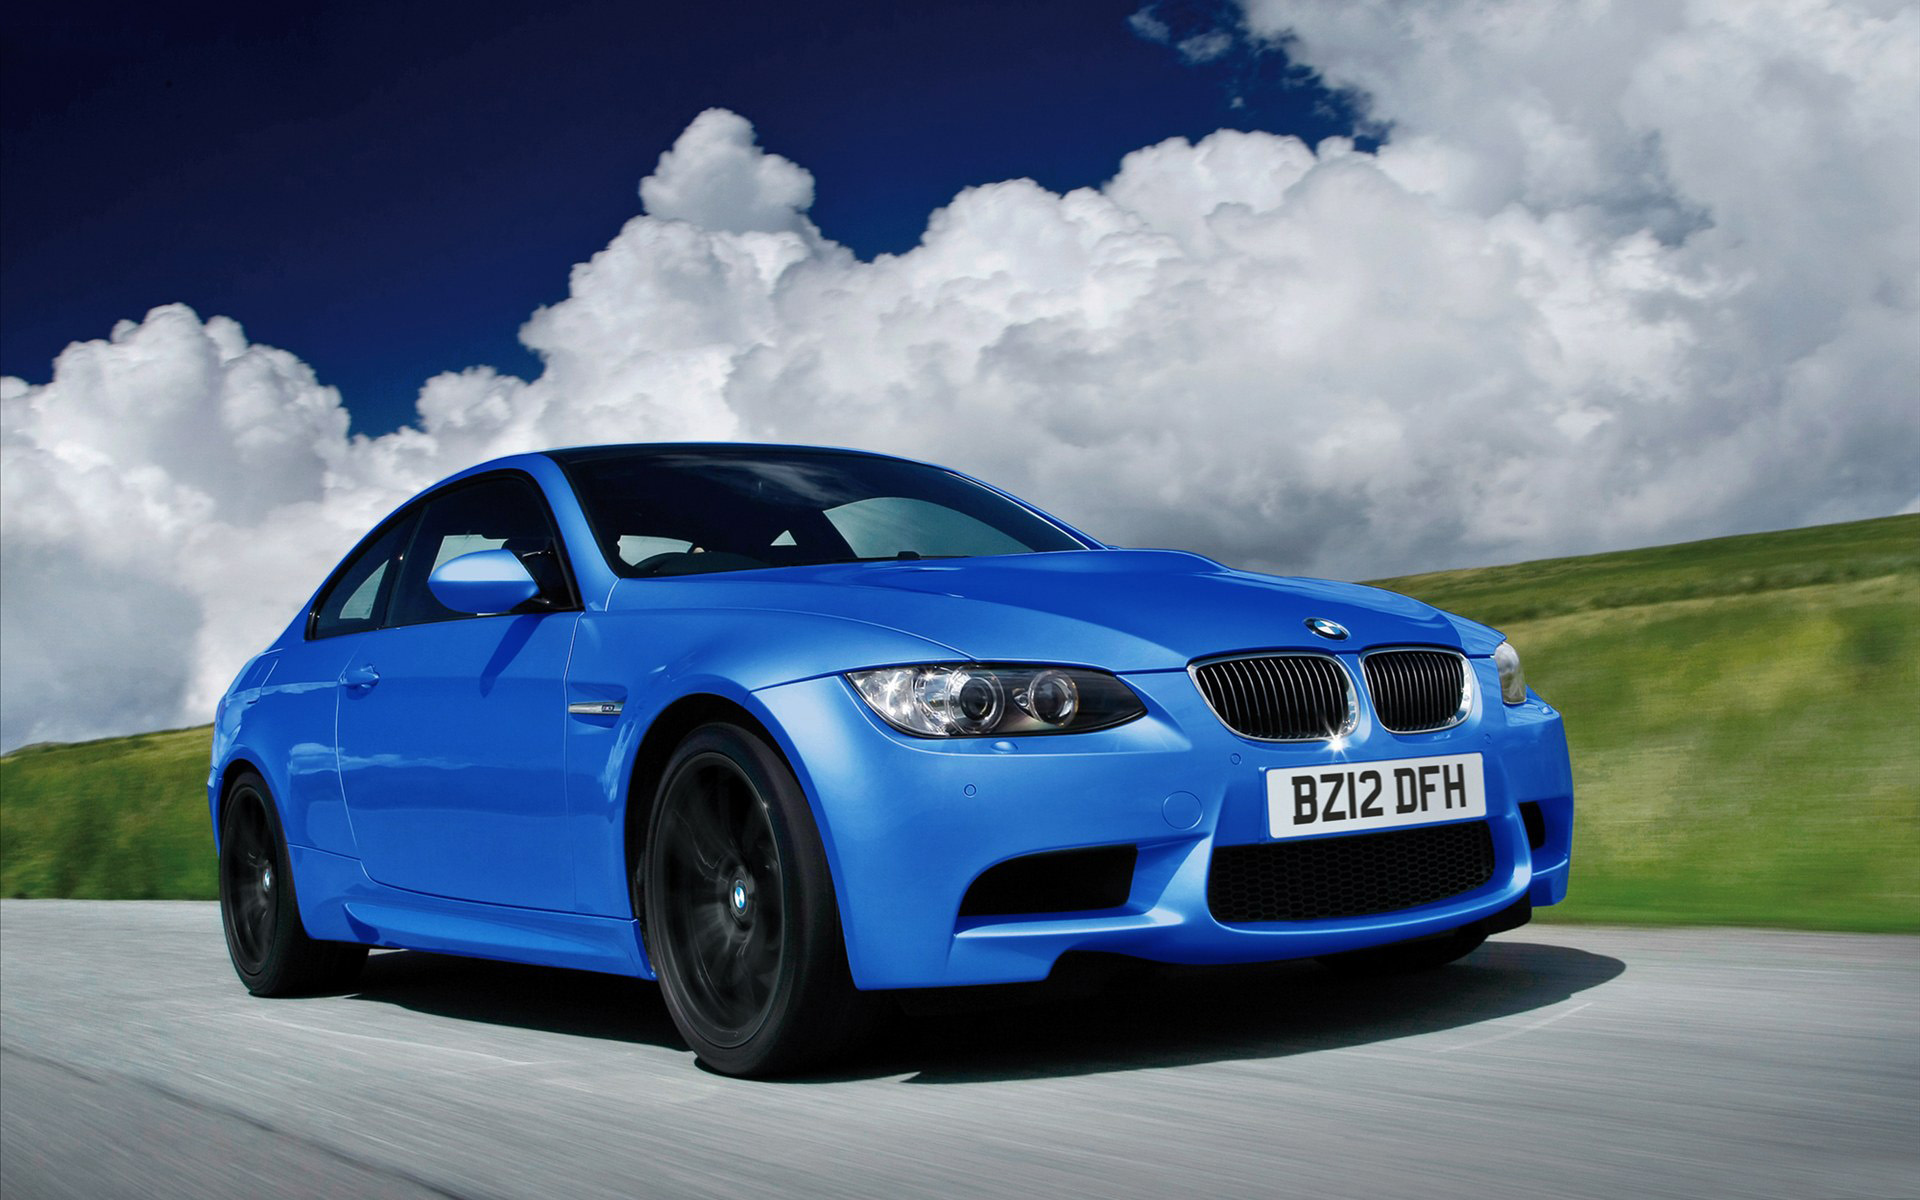 BMW M3 Limited Edition 2013 Wallpaper | HD Car Wallpapers ...